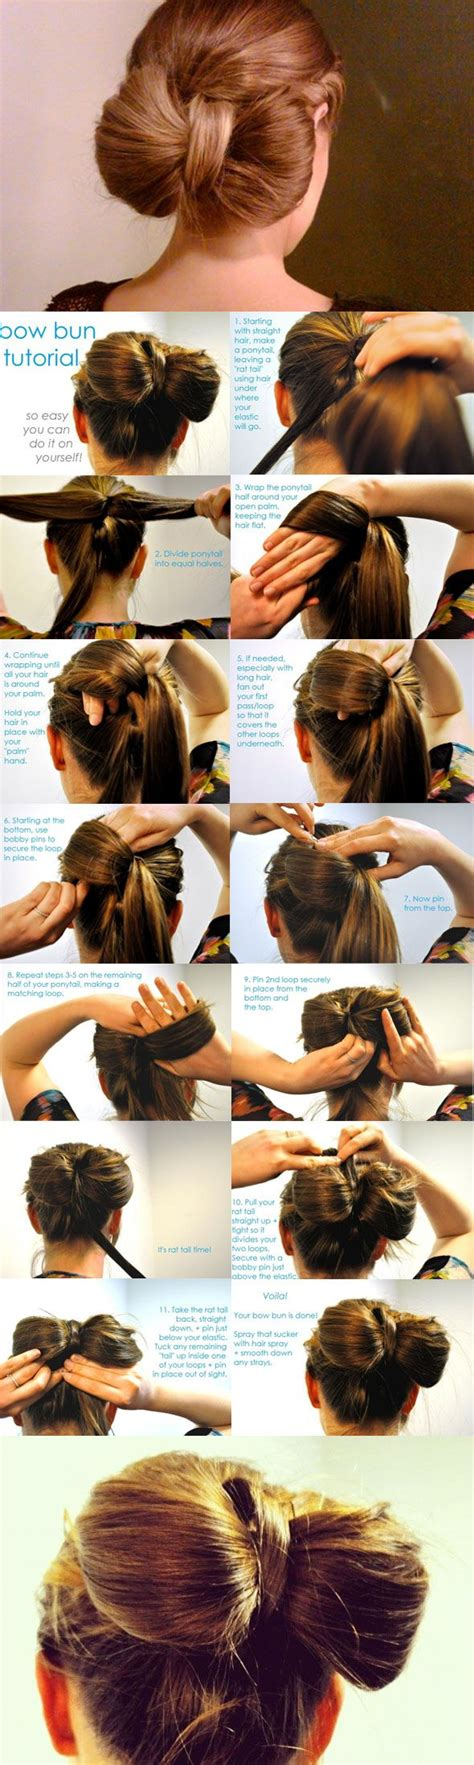 diy hairstyles bow diy bow bun